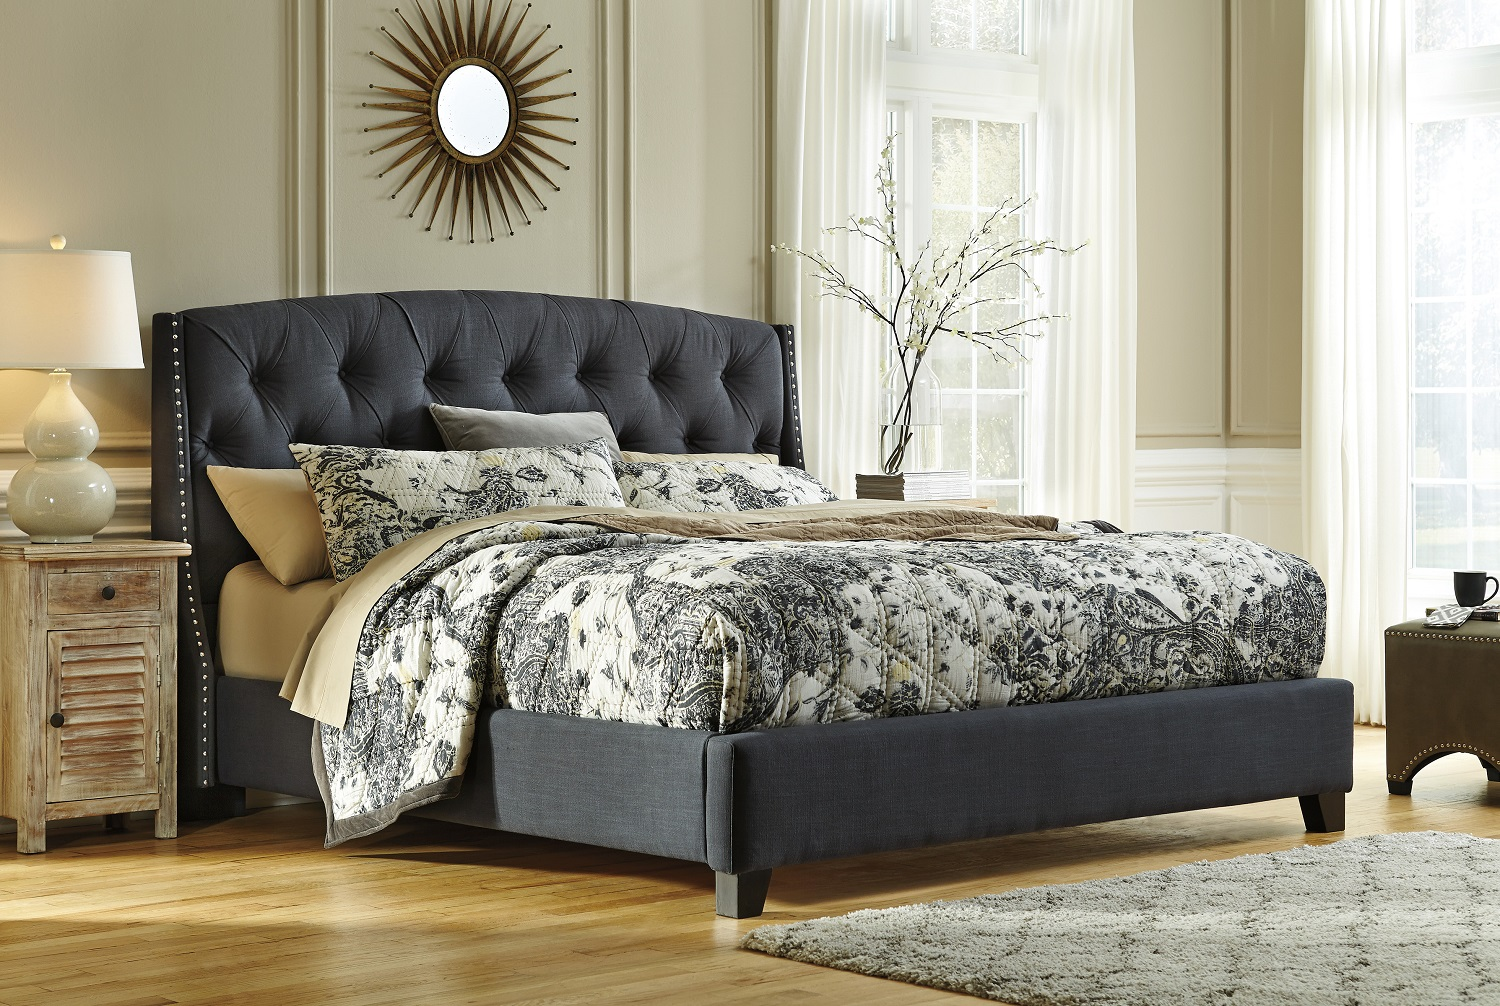 Ashley B600 Upholstered Bed